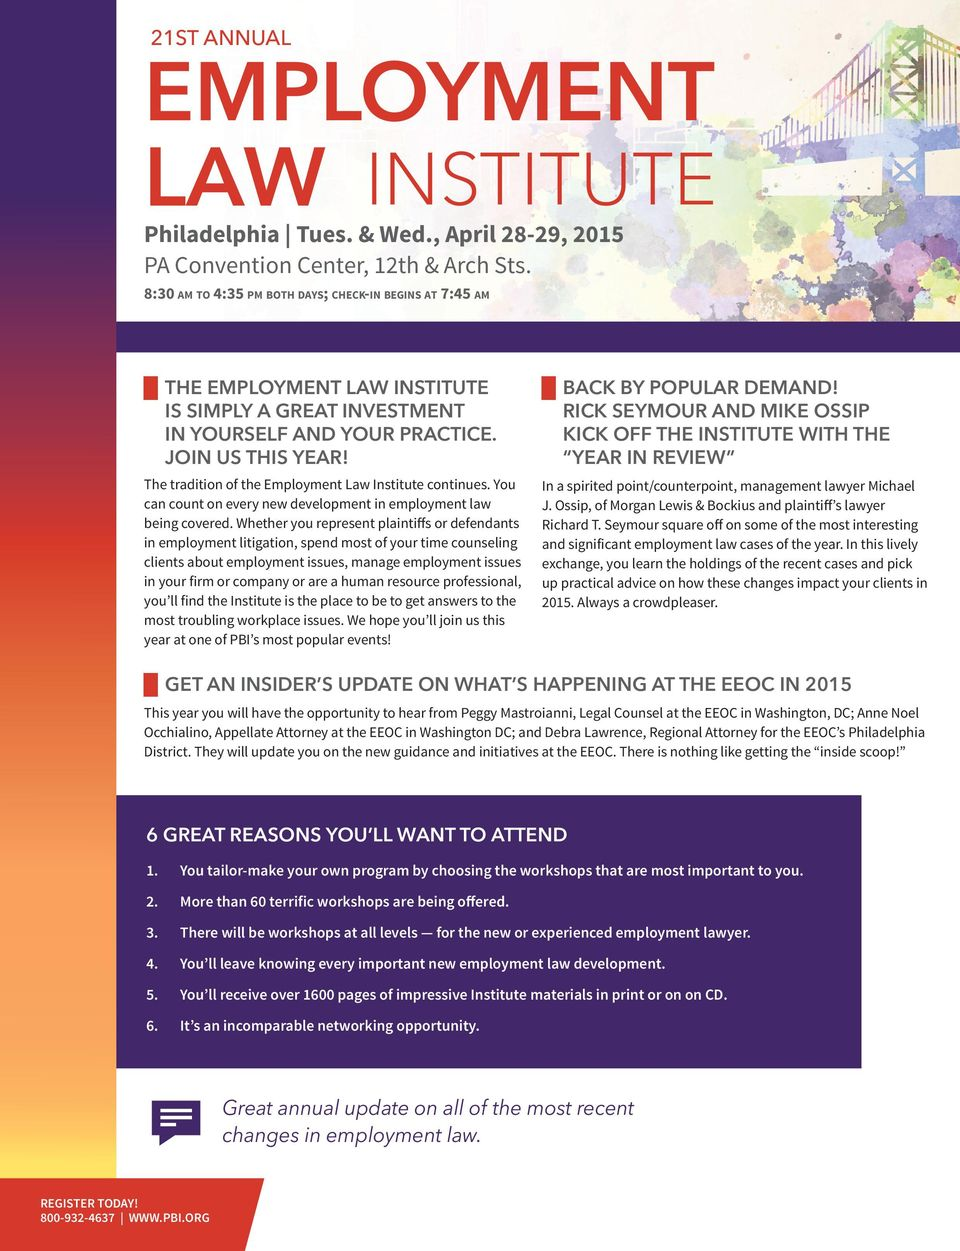 The tradition of the Employment Law Institute continues. You can count on every new development in employment law being covered.